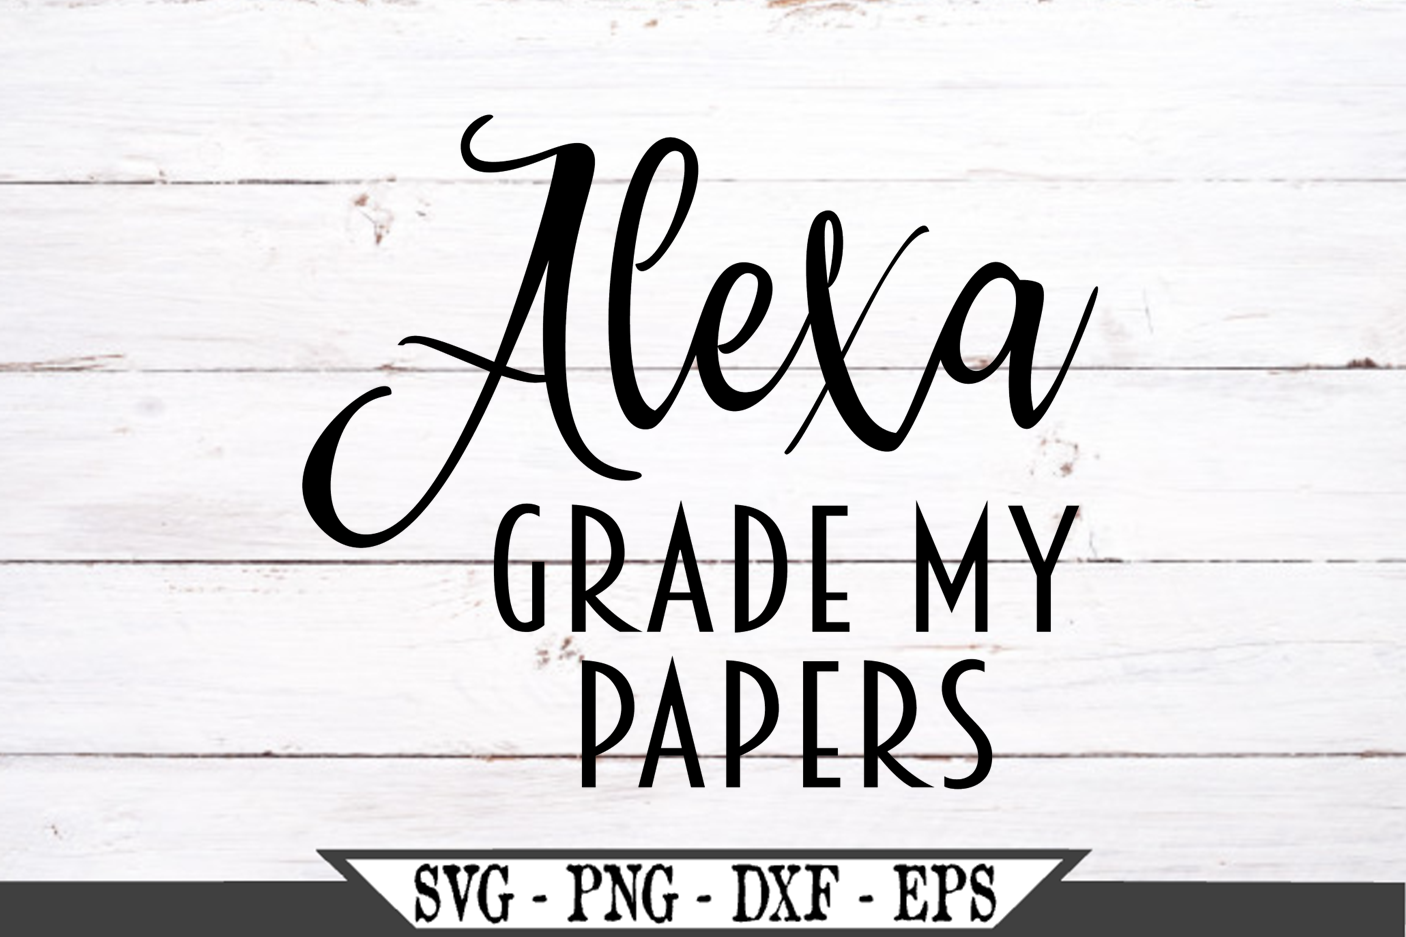 Alexa Grade My Papers SVG example image 2